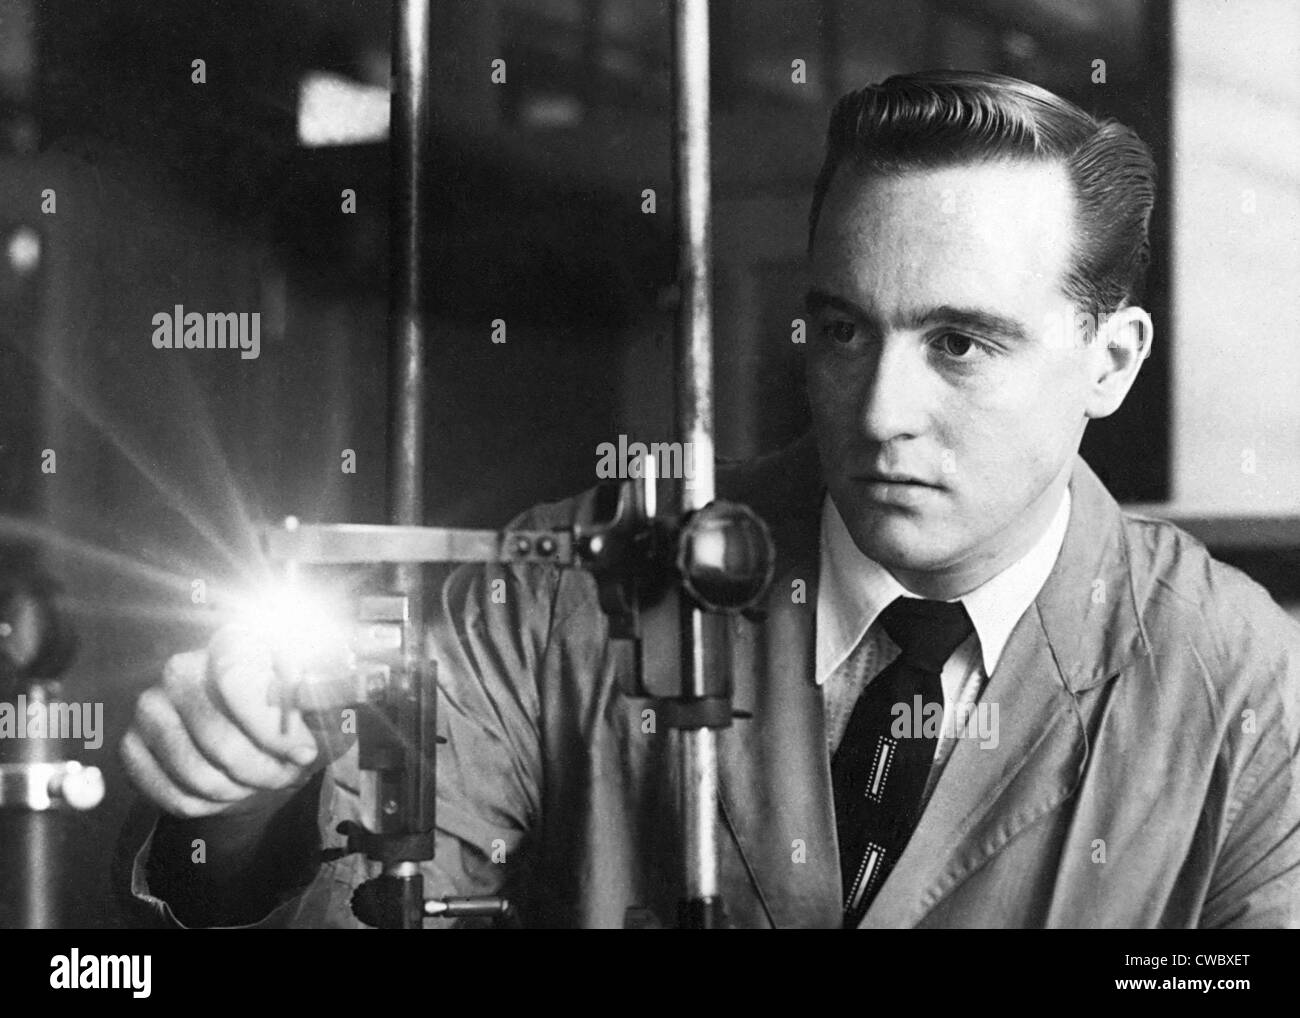 FBI scientists applied technology in criminal investigations. Ca. 1950. - Stock Image